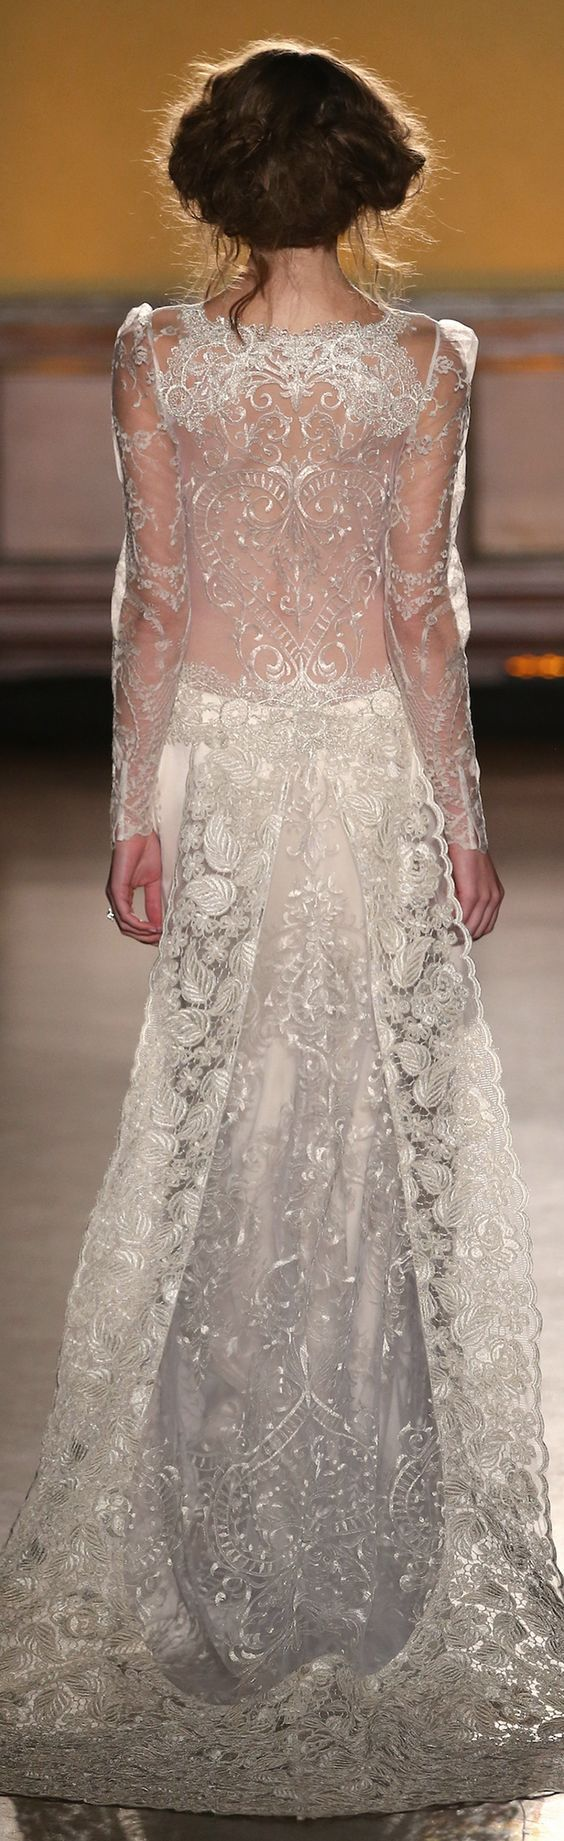 Delicate French embroidery gives such a beautiful illusion effect on the scalloped neckline, and barely there long sleeves of Sinclair by Claire Pettibone. The stunning sheer back is made of pale silver metallic thread in a graceful heart pattern, and the same motif trails along the skirt. The removable train features luxe scalloped lace for a stunning back view.   https://couture.clairepettibone.com/collections/the-gilded-age/products/sinclair